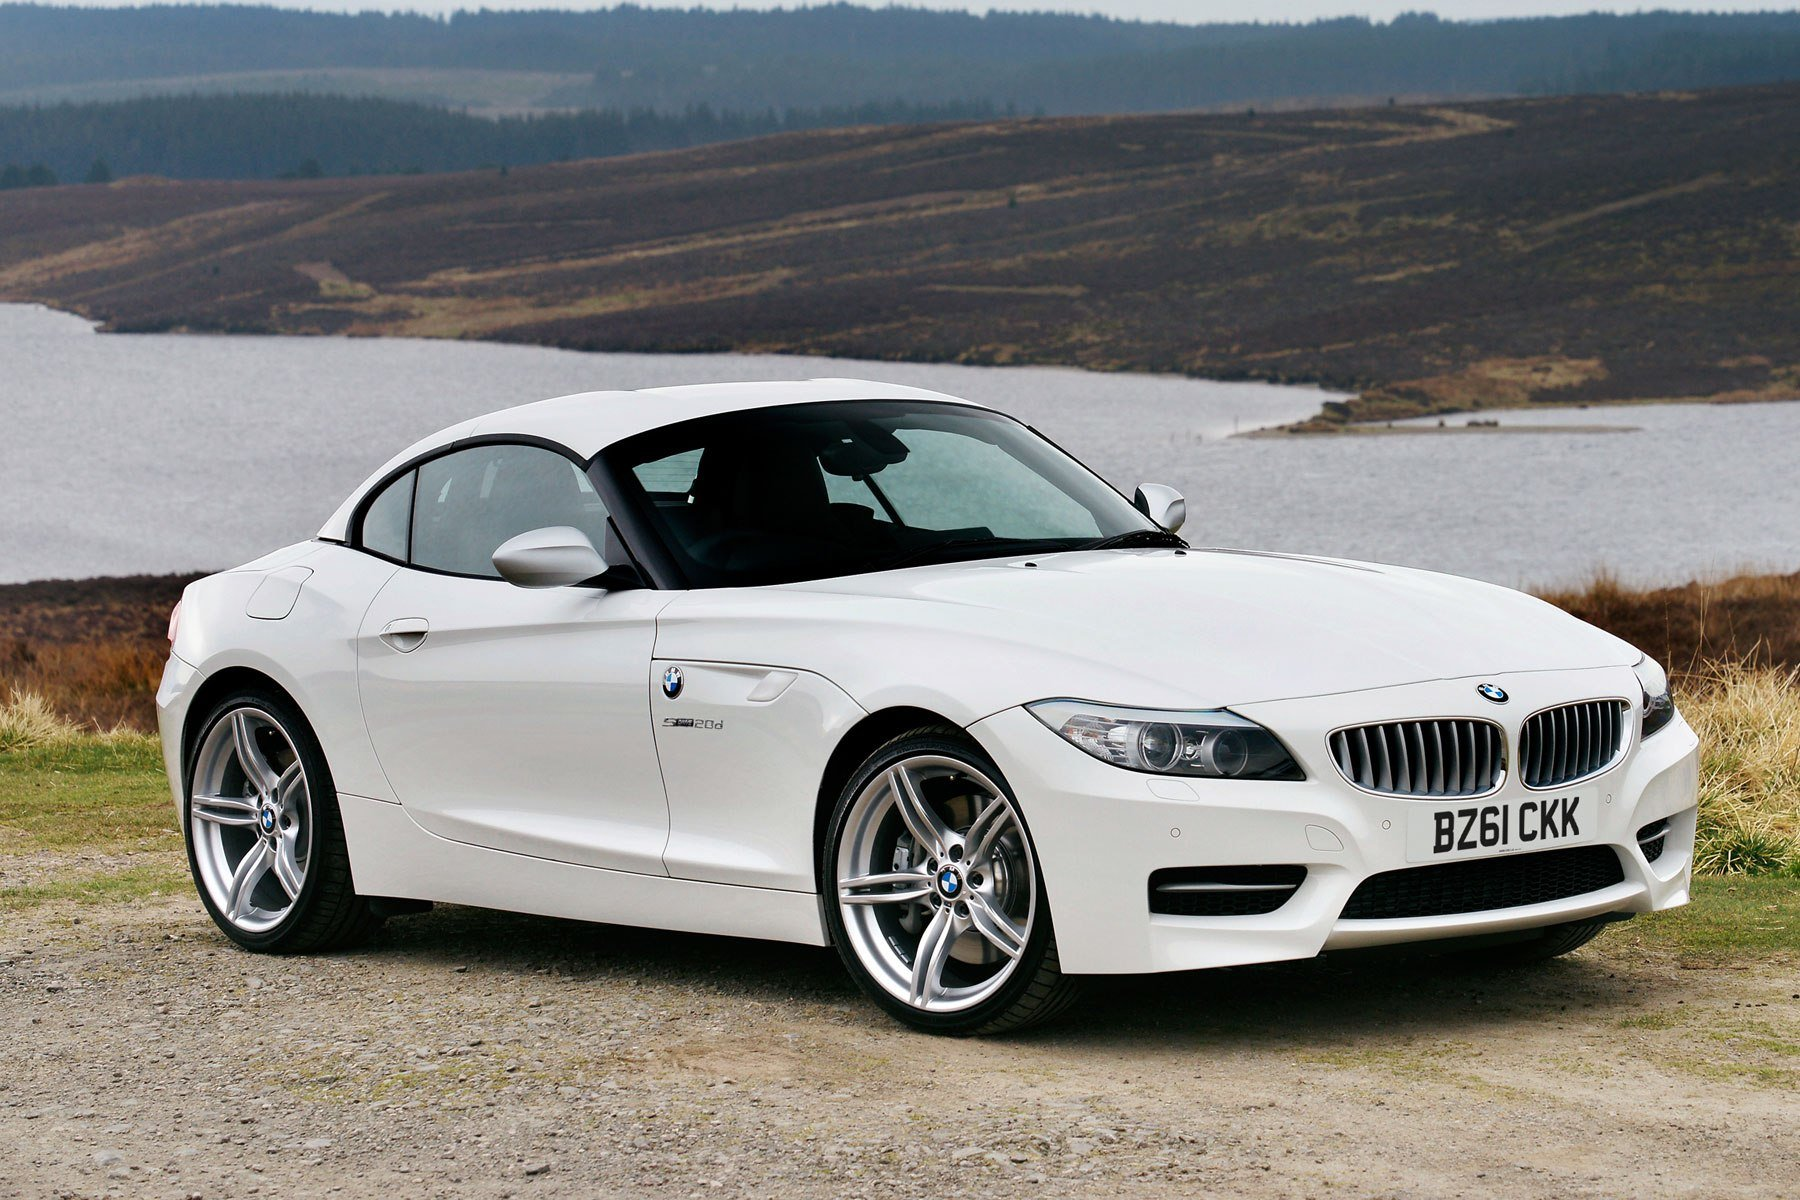 Latest From Z1 To Z4 The History Of Bmw Z Cars Motoring Research Free Download